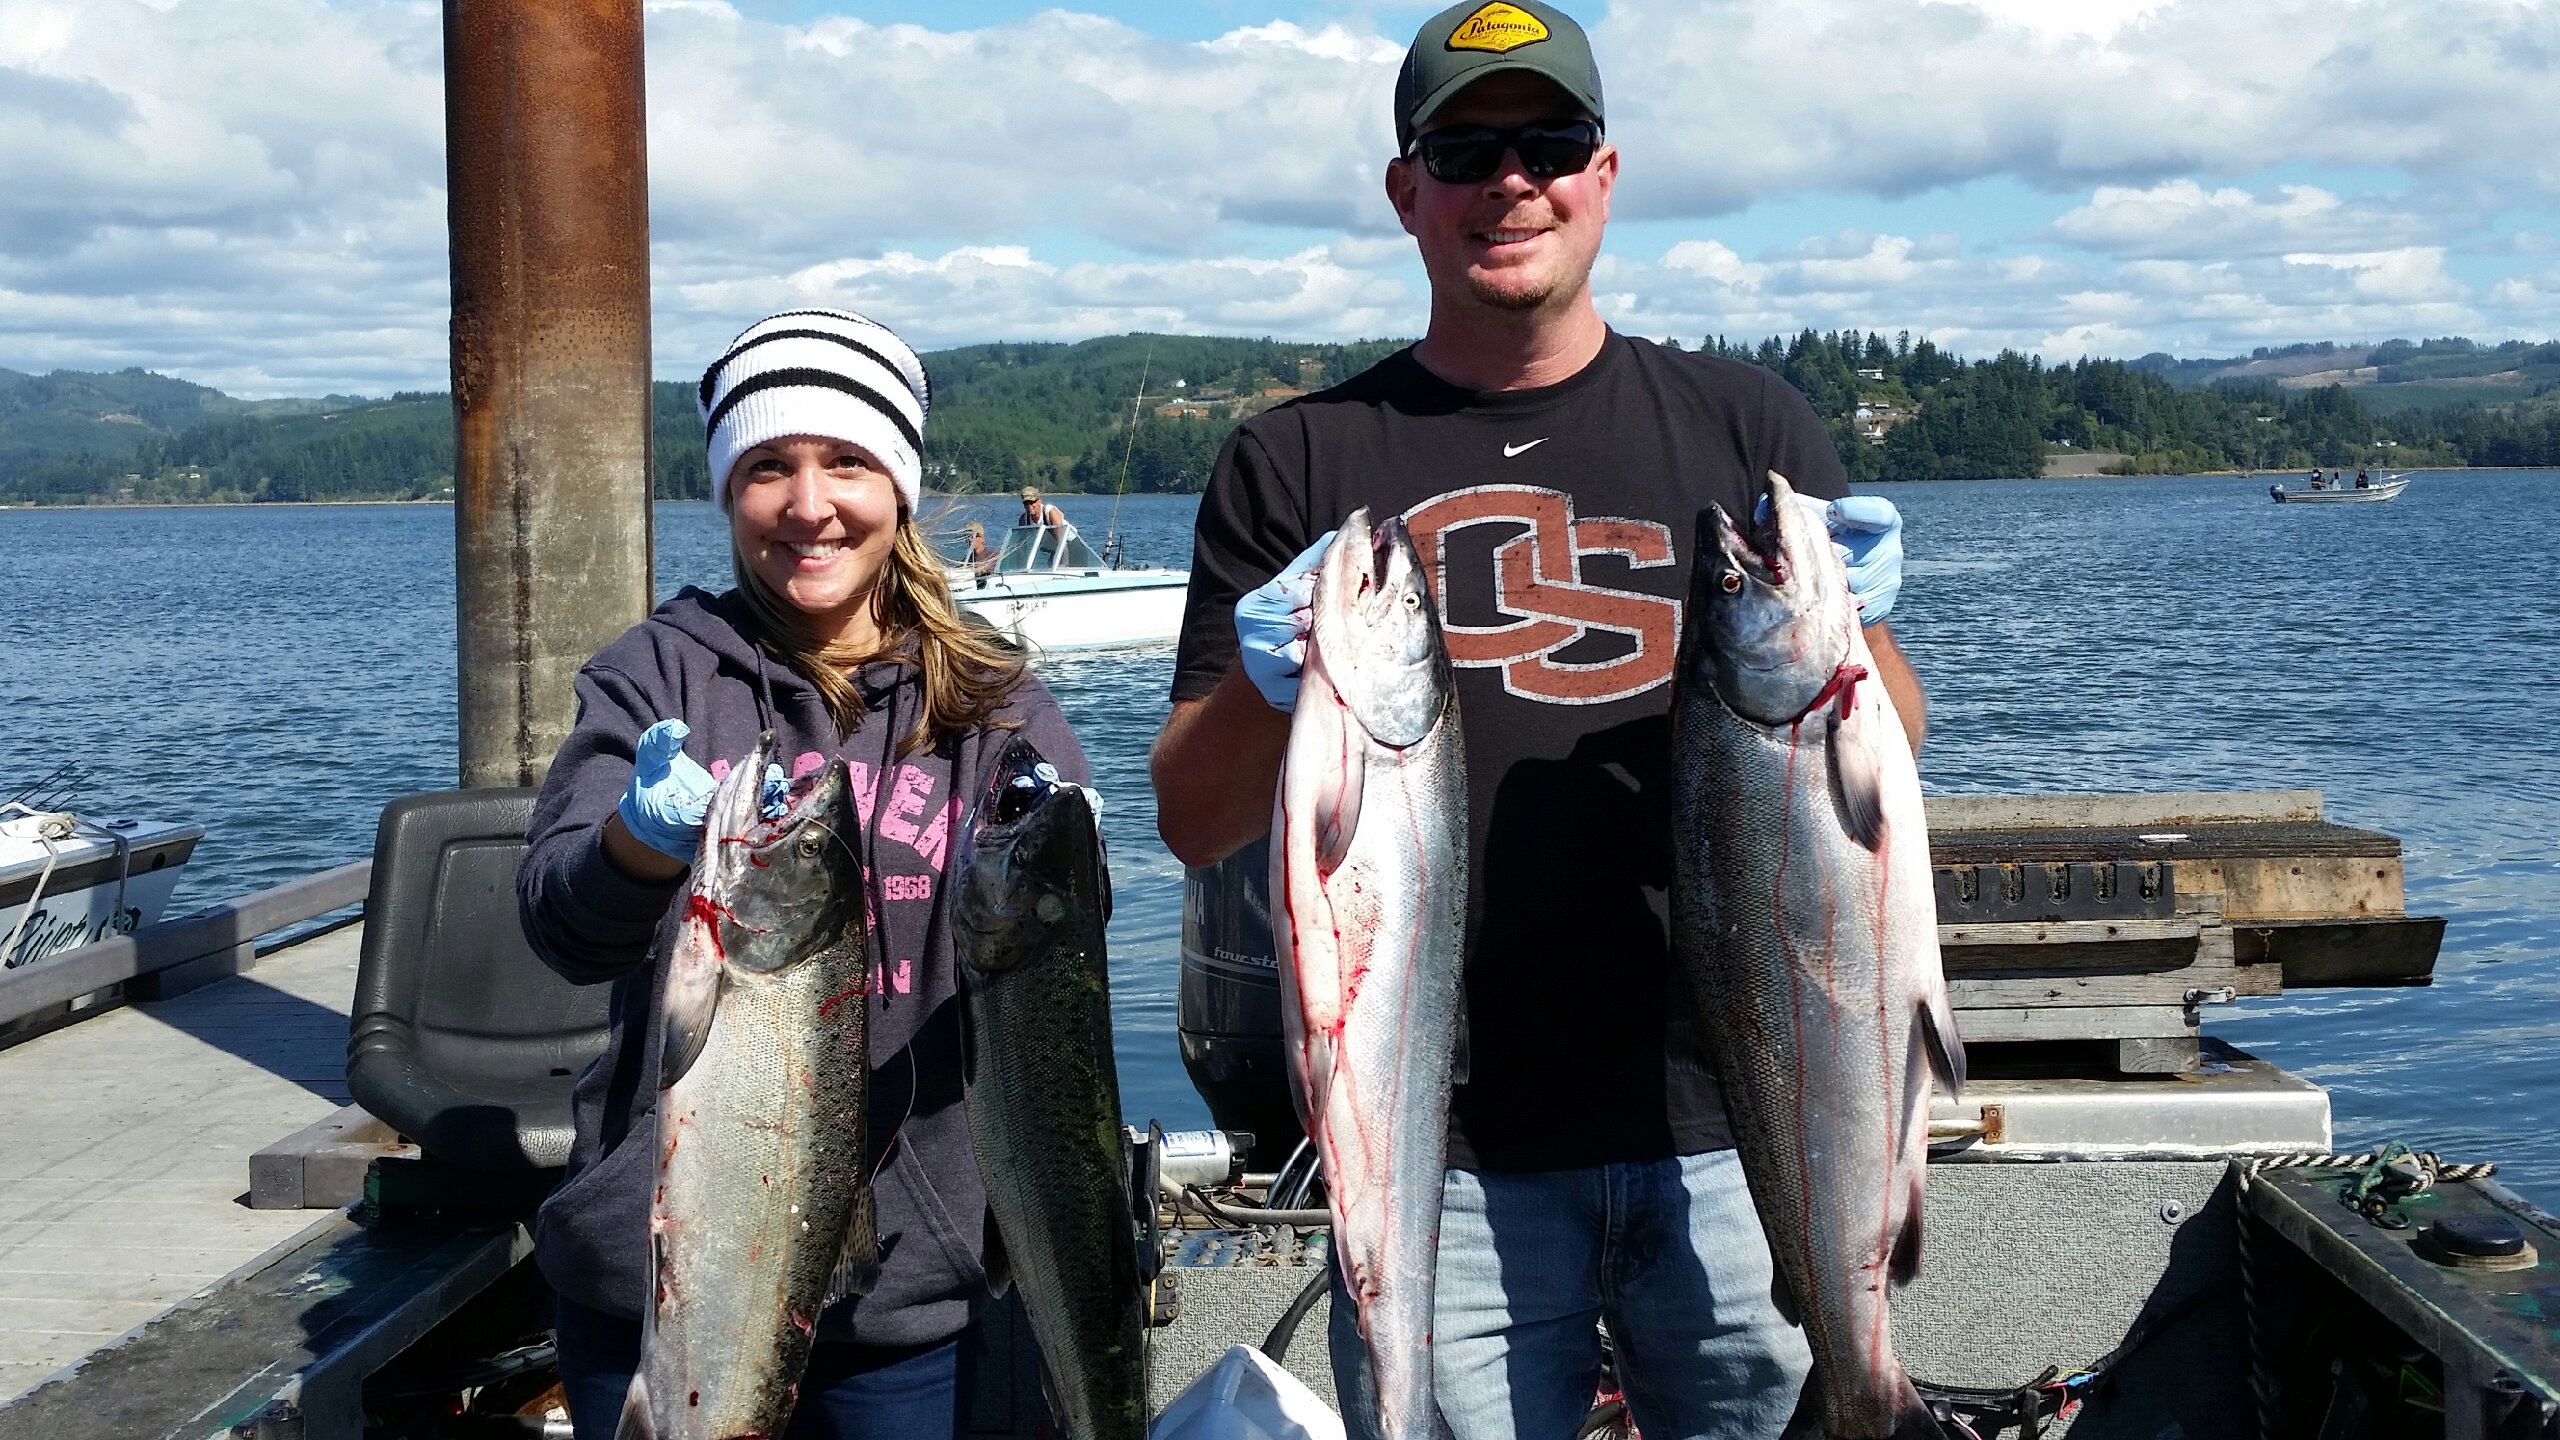 Coos bay fishing archives memory makers rogue river guides for Coos bay fishing